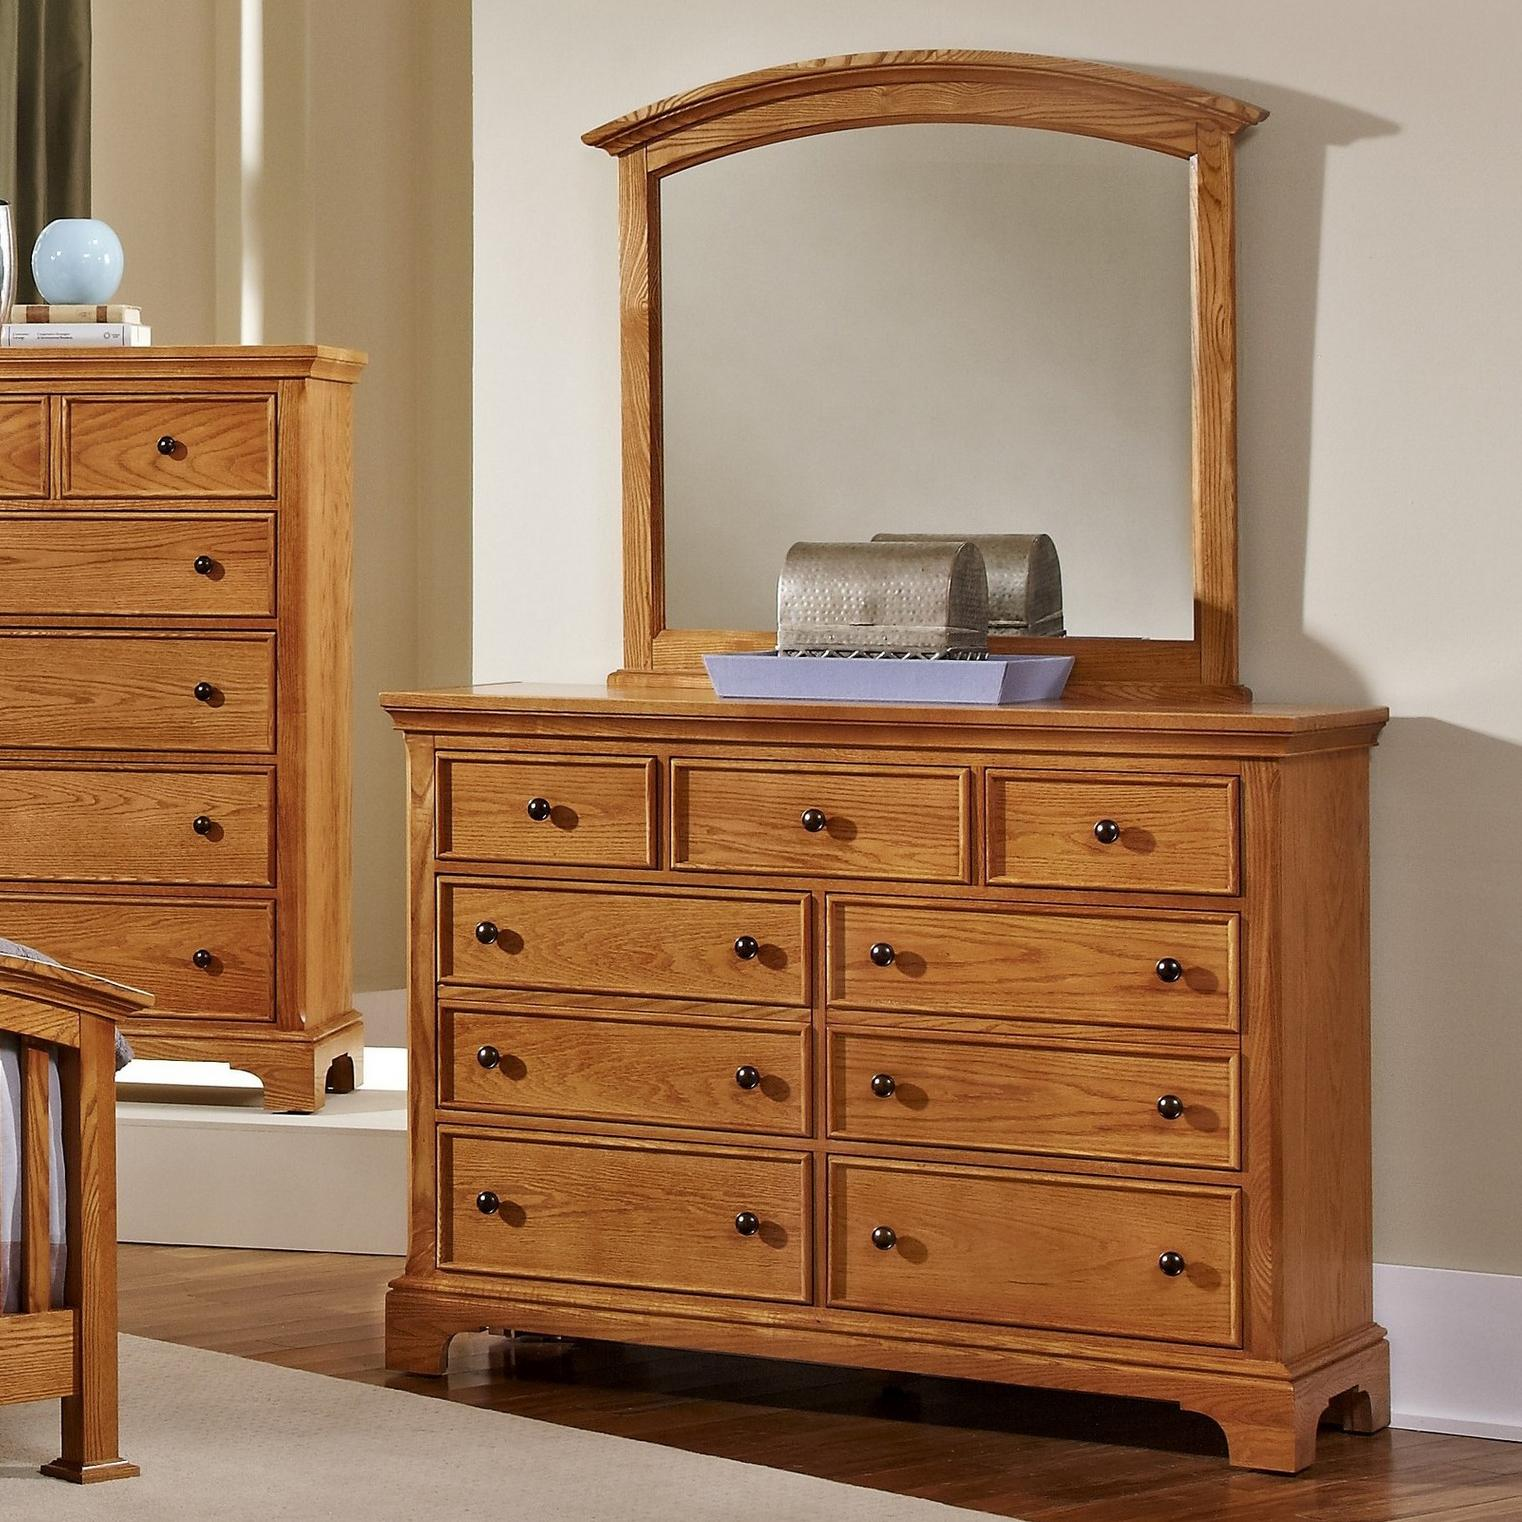 Vaughan Bassett Forsyth 7 Drawer Dresser and Arched Mirror - Item Number: BB75-002+447